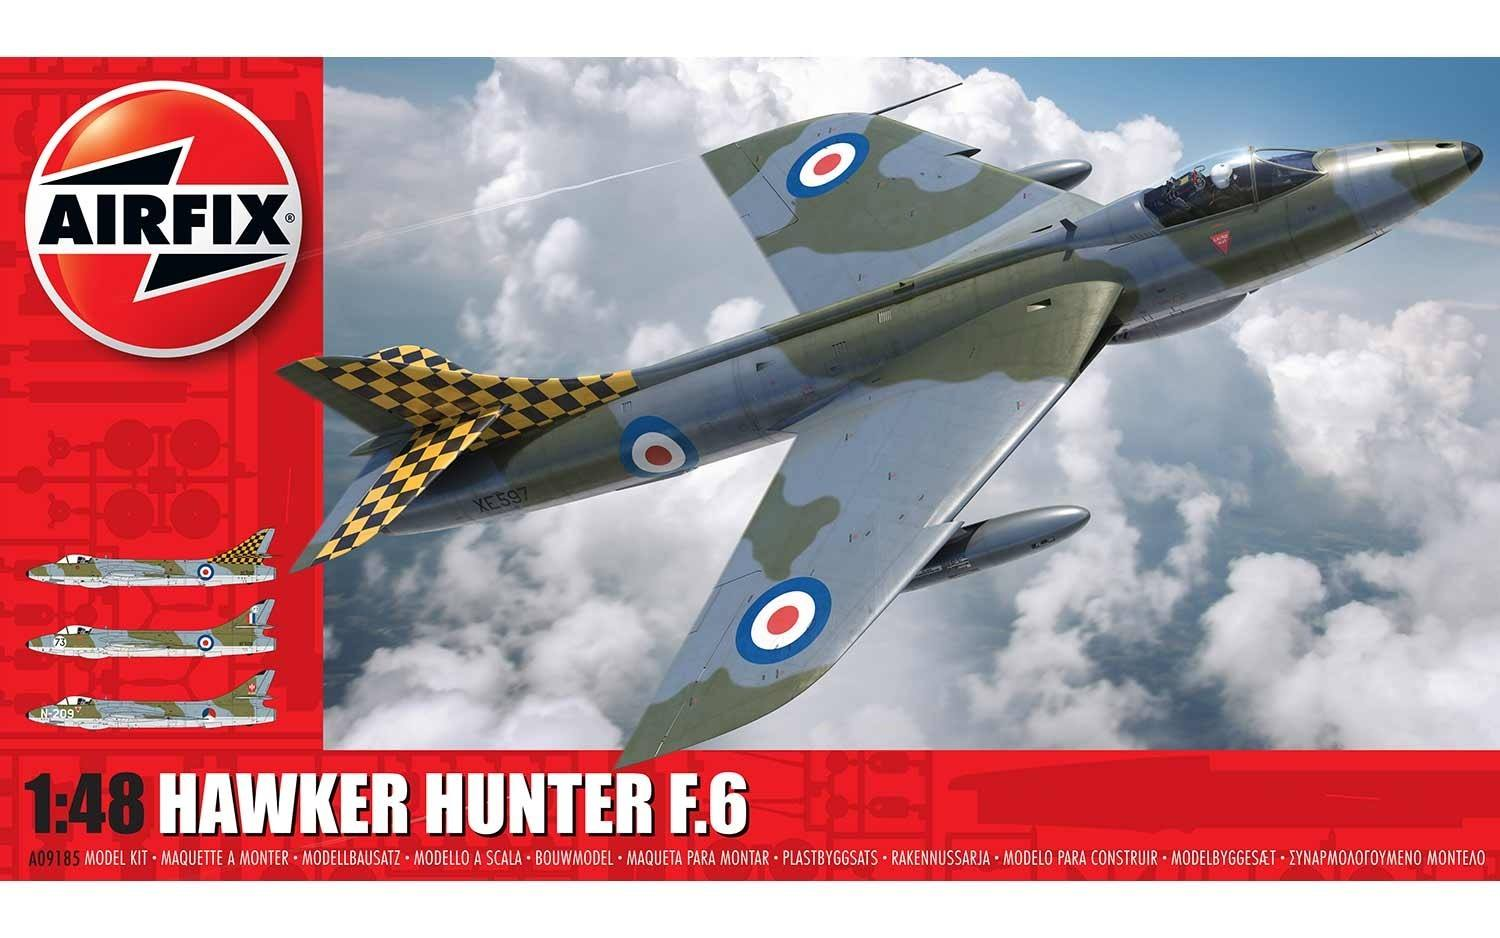 Hawker Hunter F6